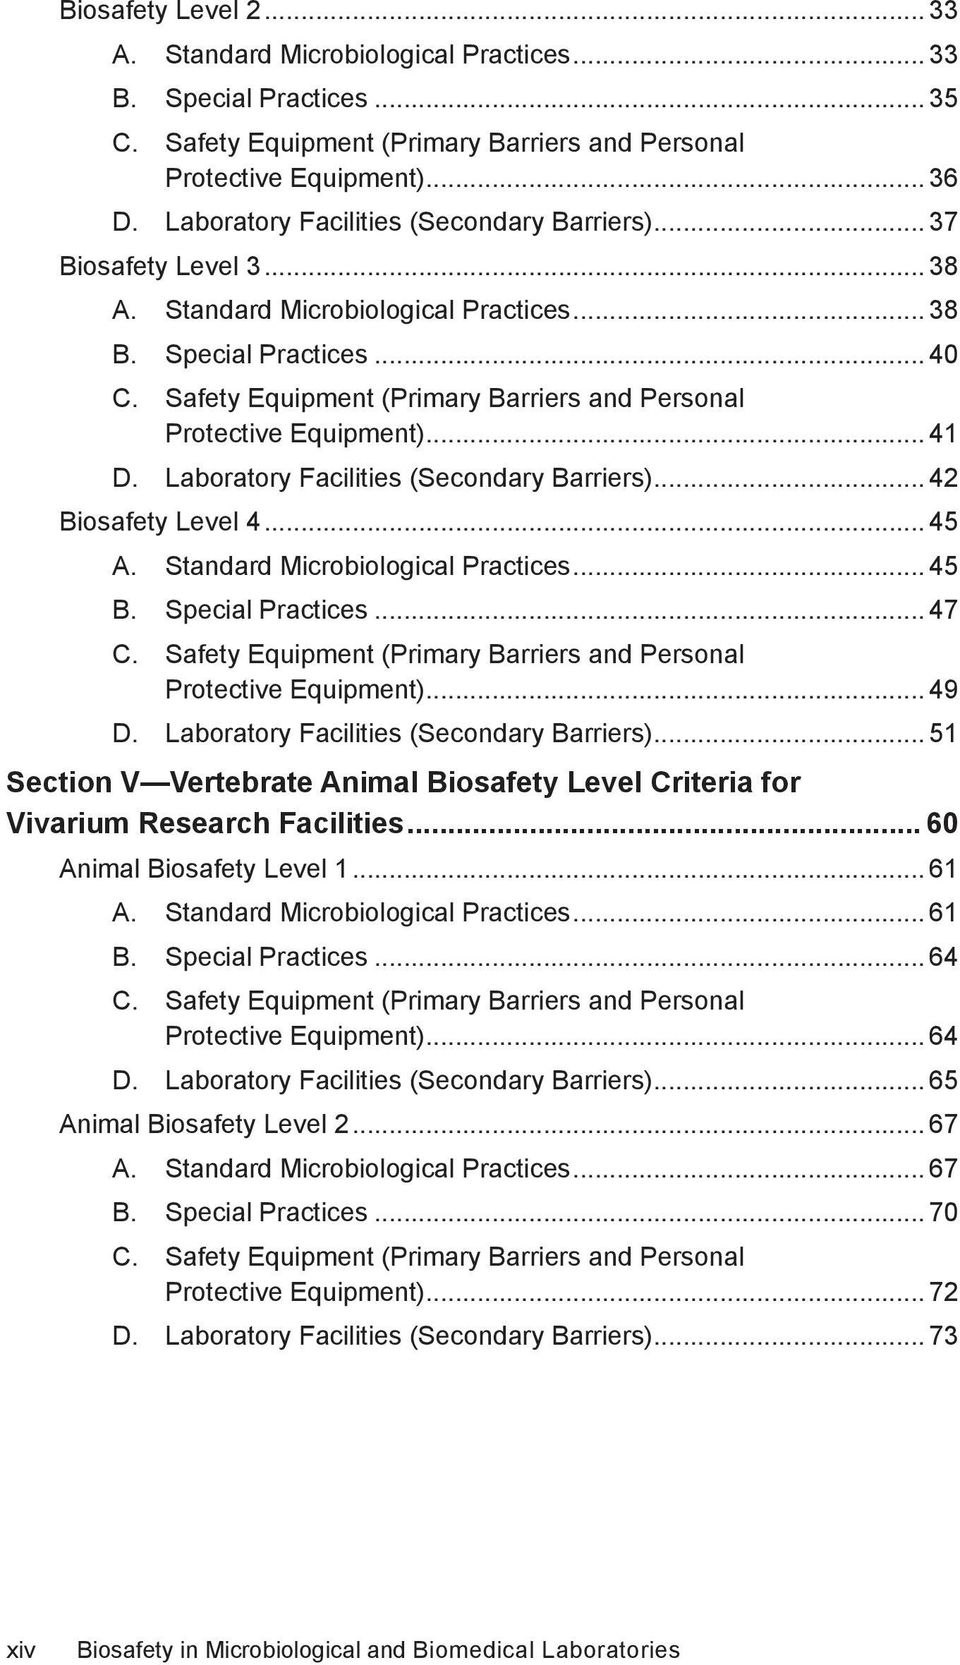 Safety Equipment (Primary Barriers and Personal Protective Equipment)... 41 D. Laboratory Facilities (Secondary Barriers)... 42 Biosafety Level 4... 45 A. Standard Microbiological Practices... 45 B.